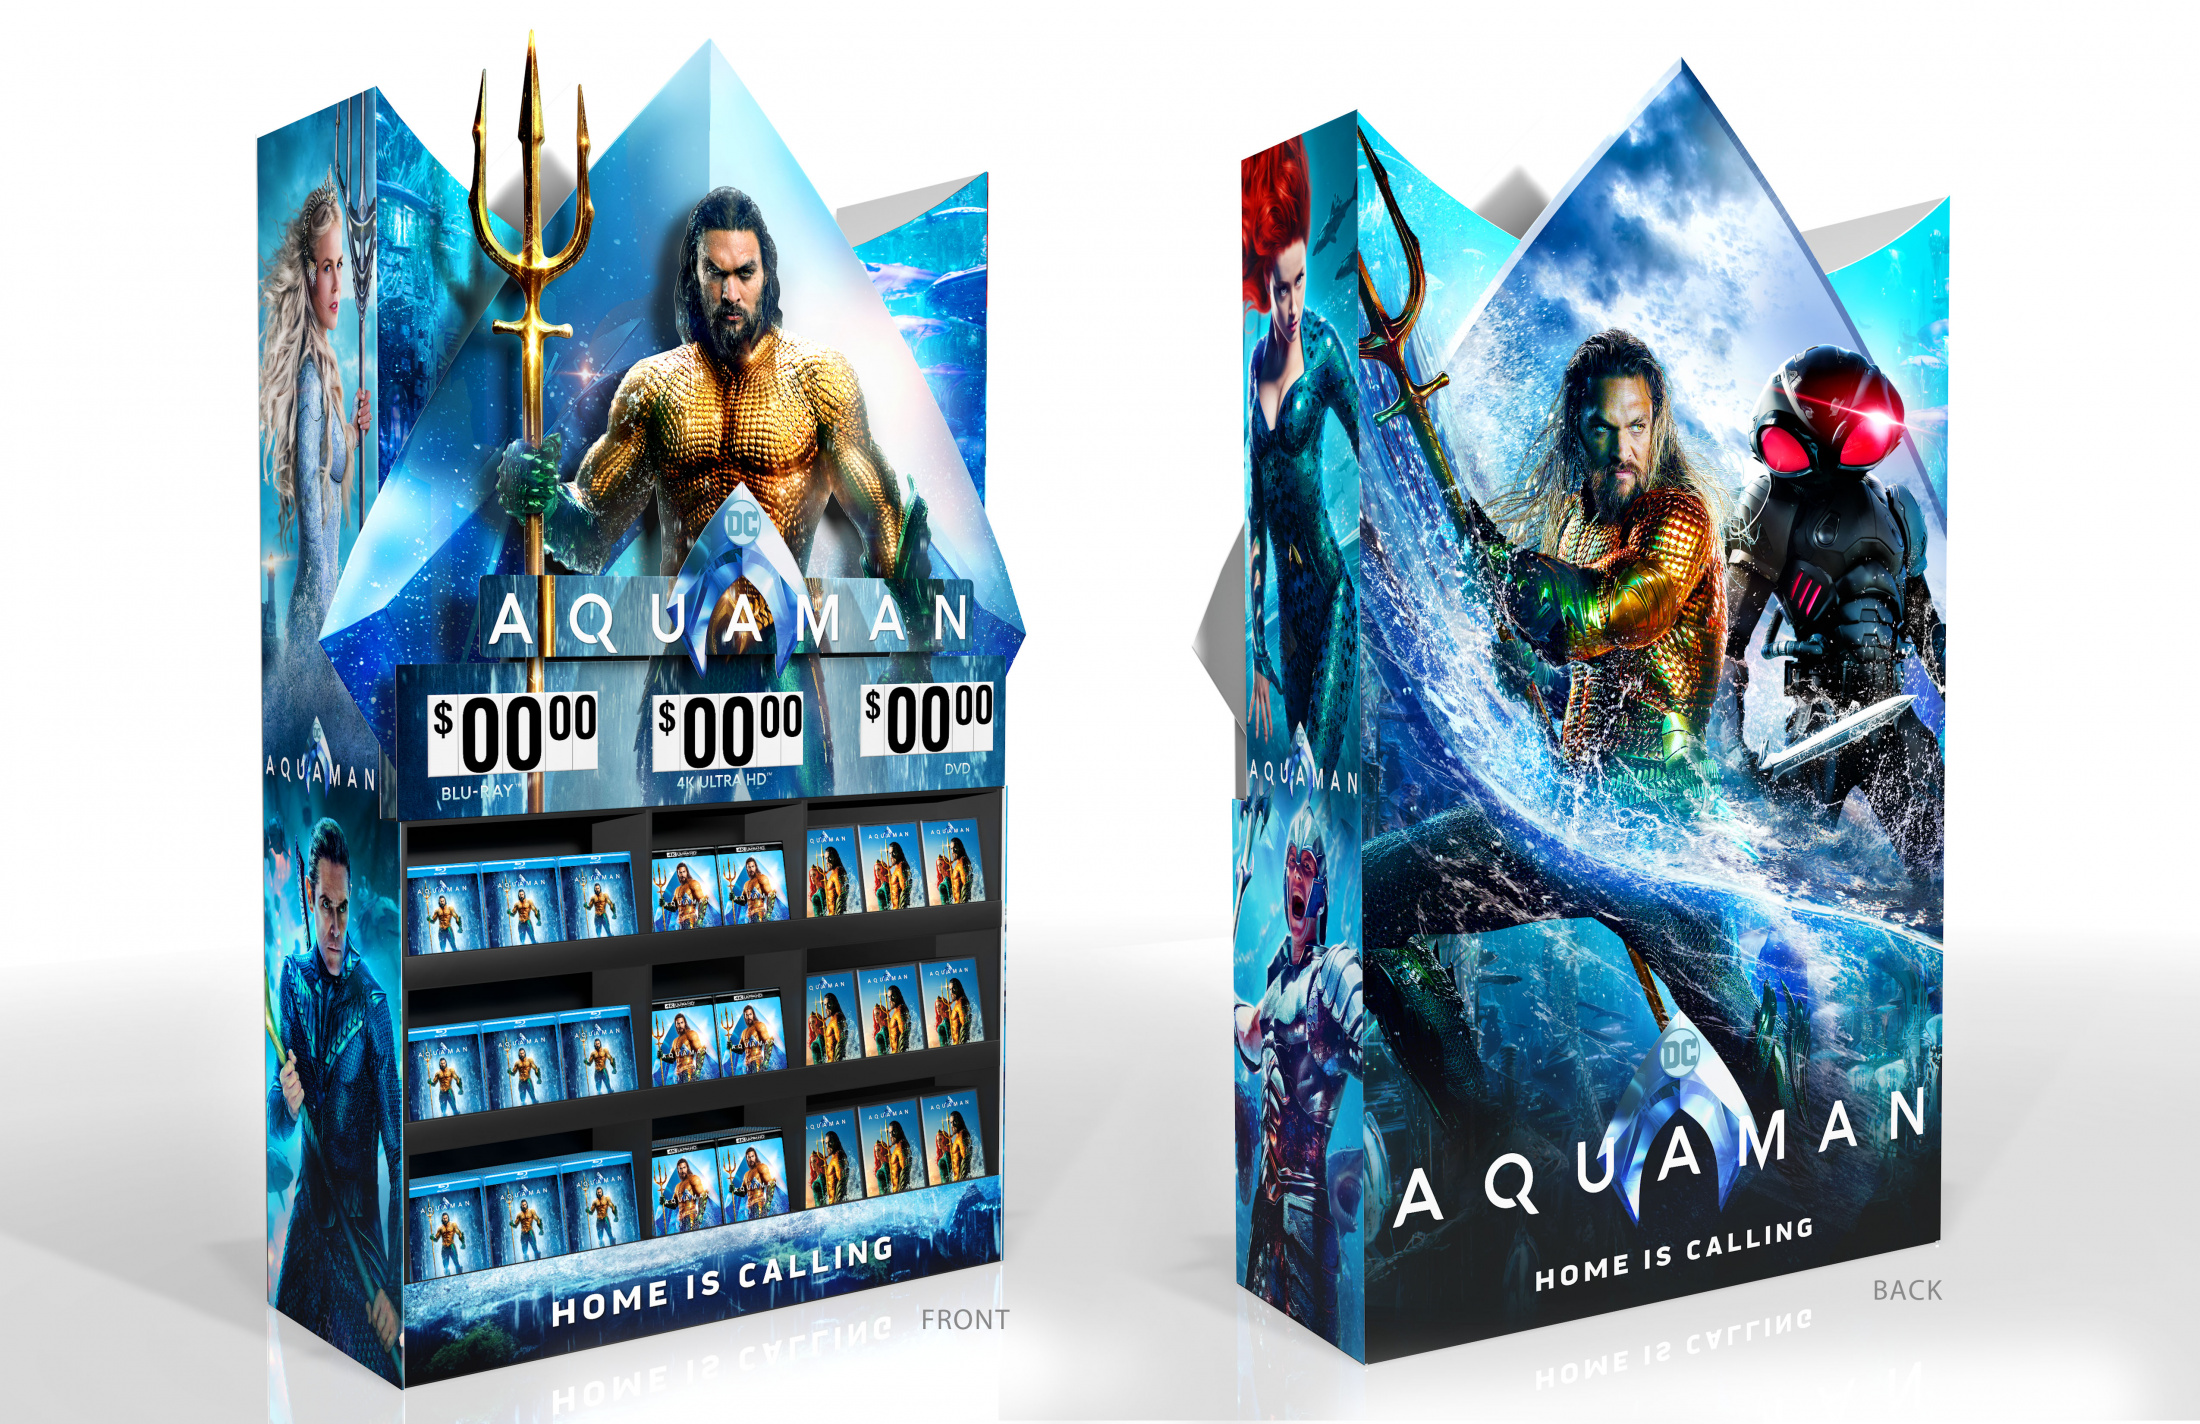 Thumbnail for Aquaman Home Entertainment Walmart Display Mini Wow Cube